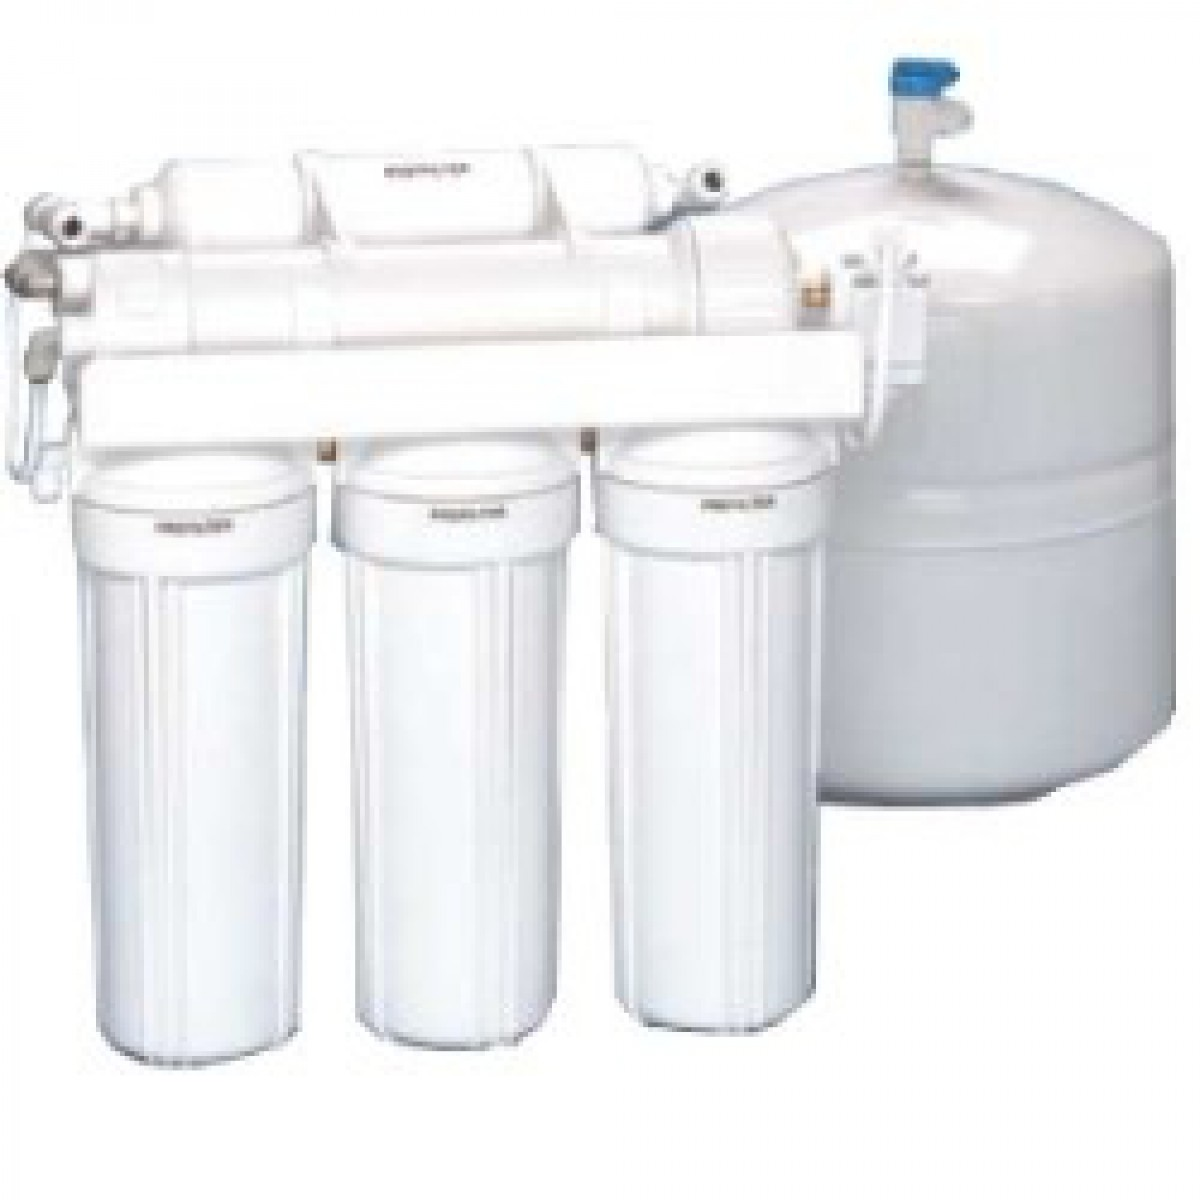 Biomaster Ro 40001 Reverse Osmosis Drinking Water System